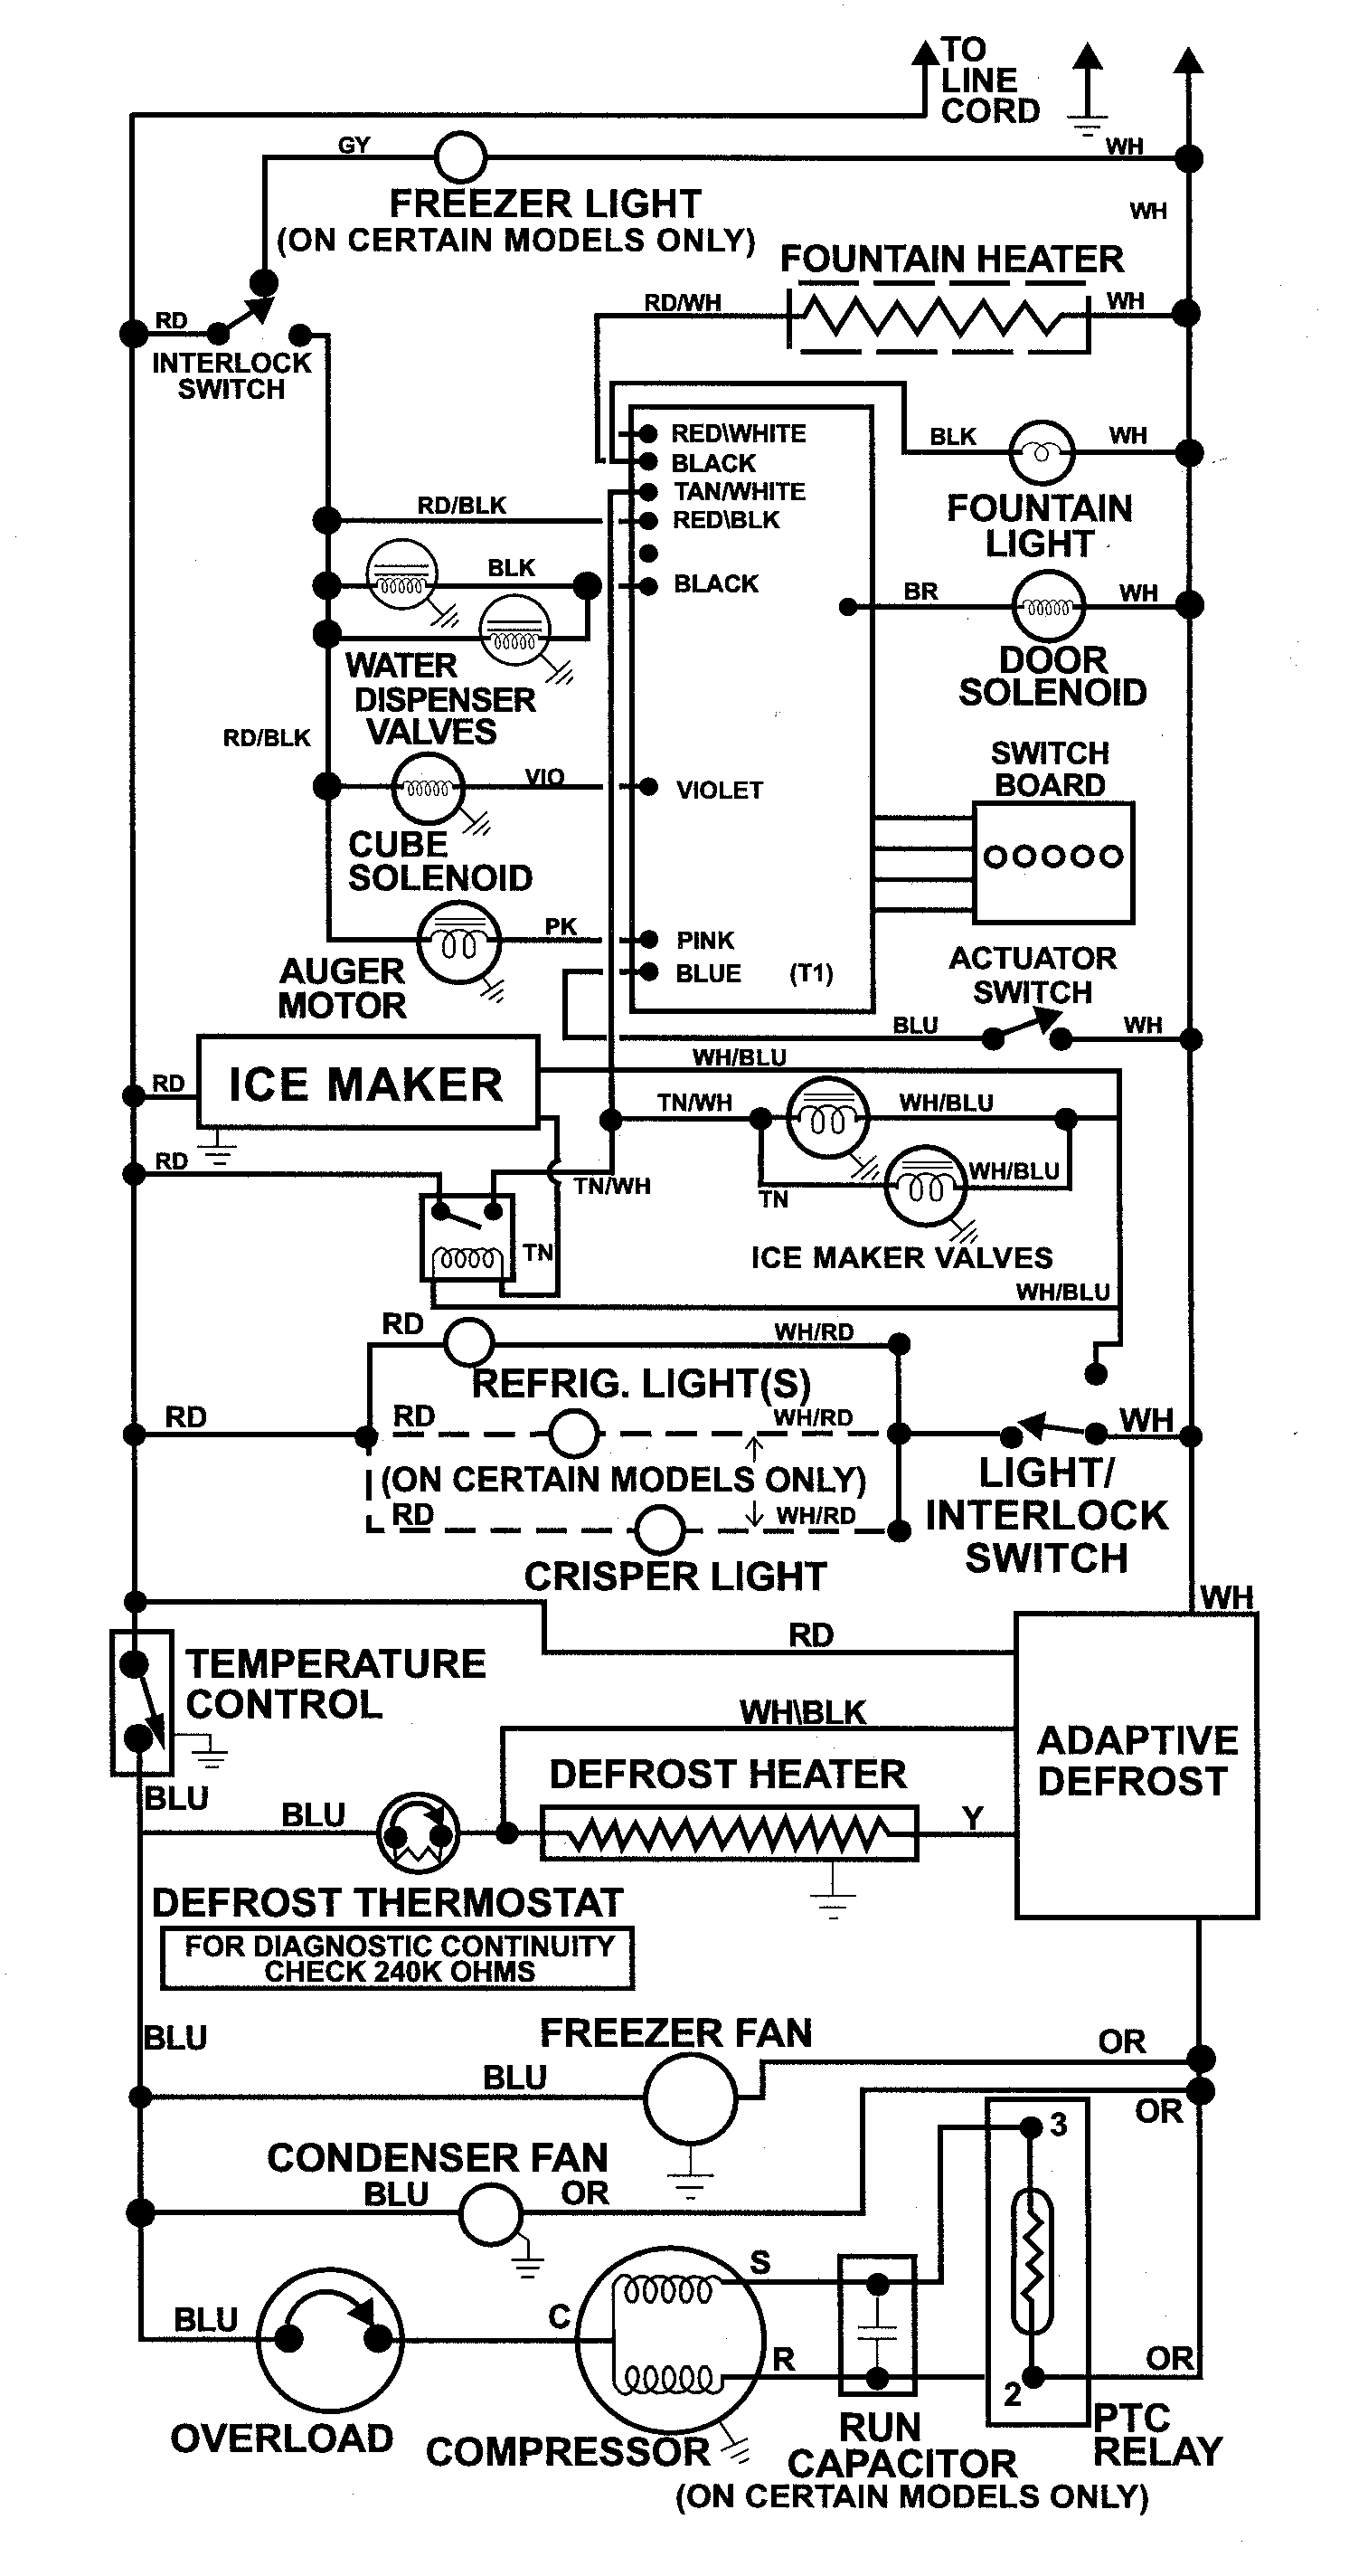 small resolution of wiring diagram for maytag refrigerator wiring diagram paper wiring diagram maytag fridge wiring diagram maytag fridge